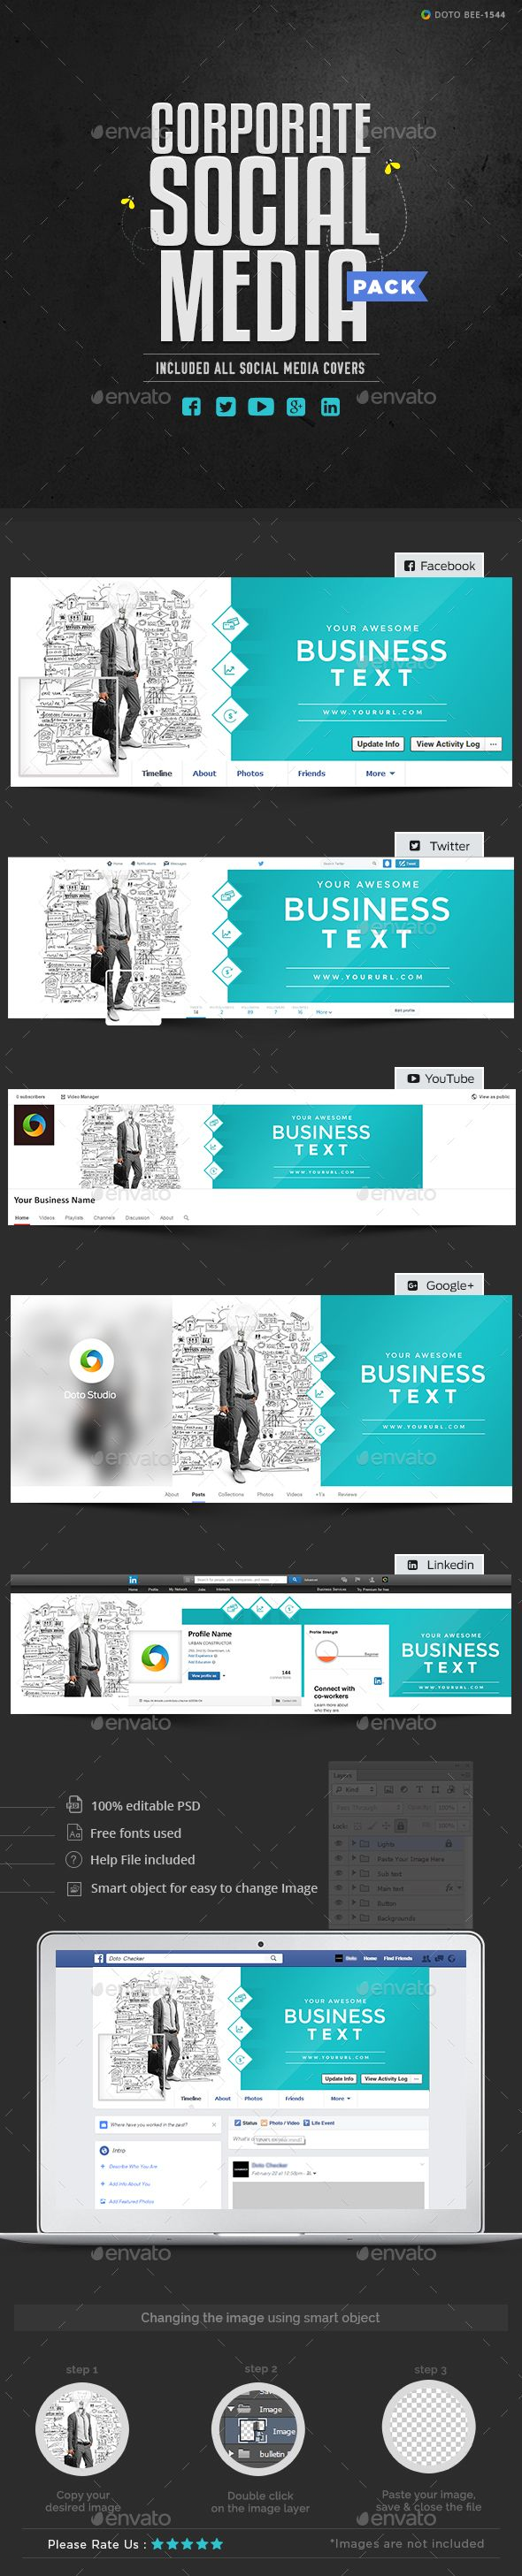 65 best social media package images on pinterest font logo corporate social media pack wajeb Choice Image